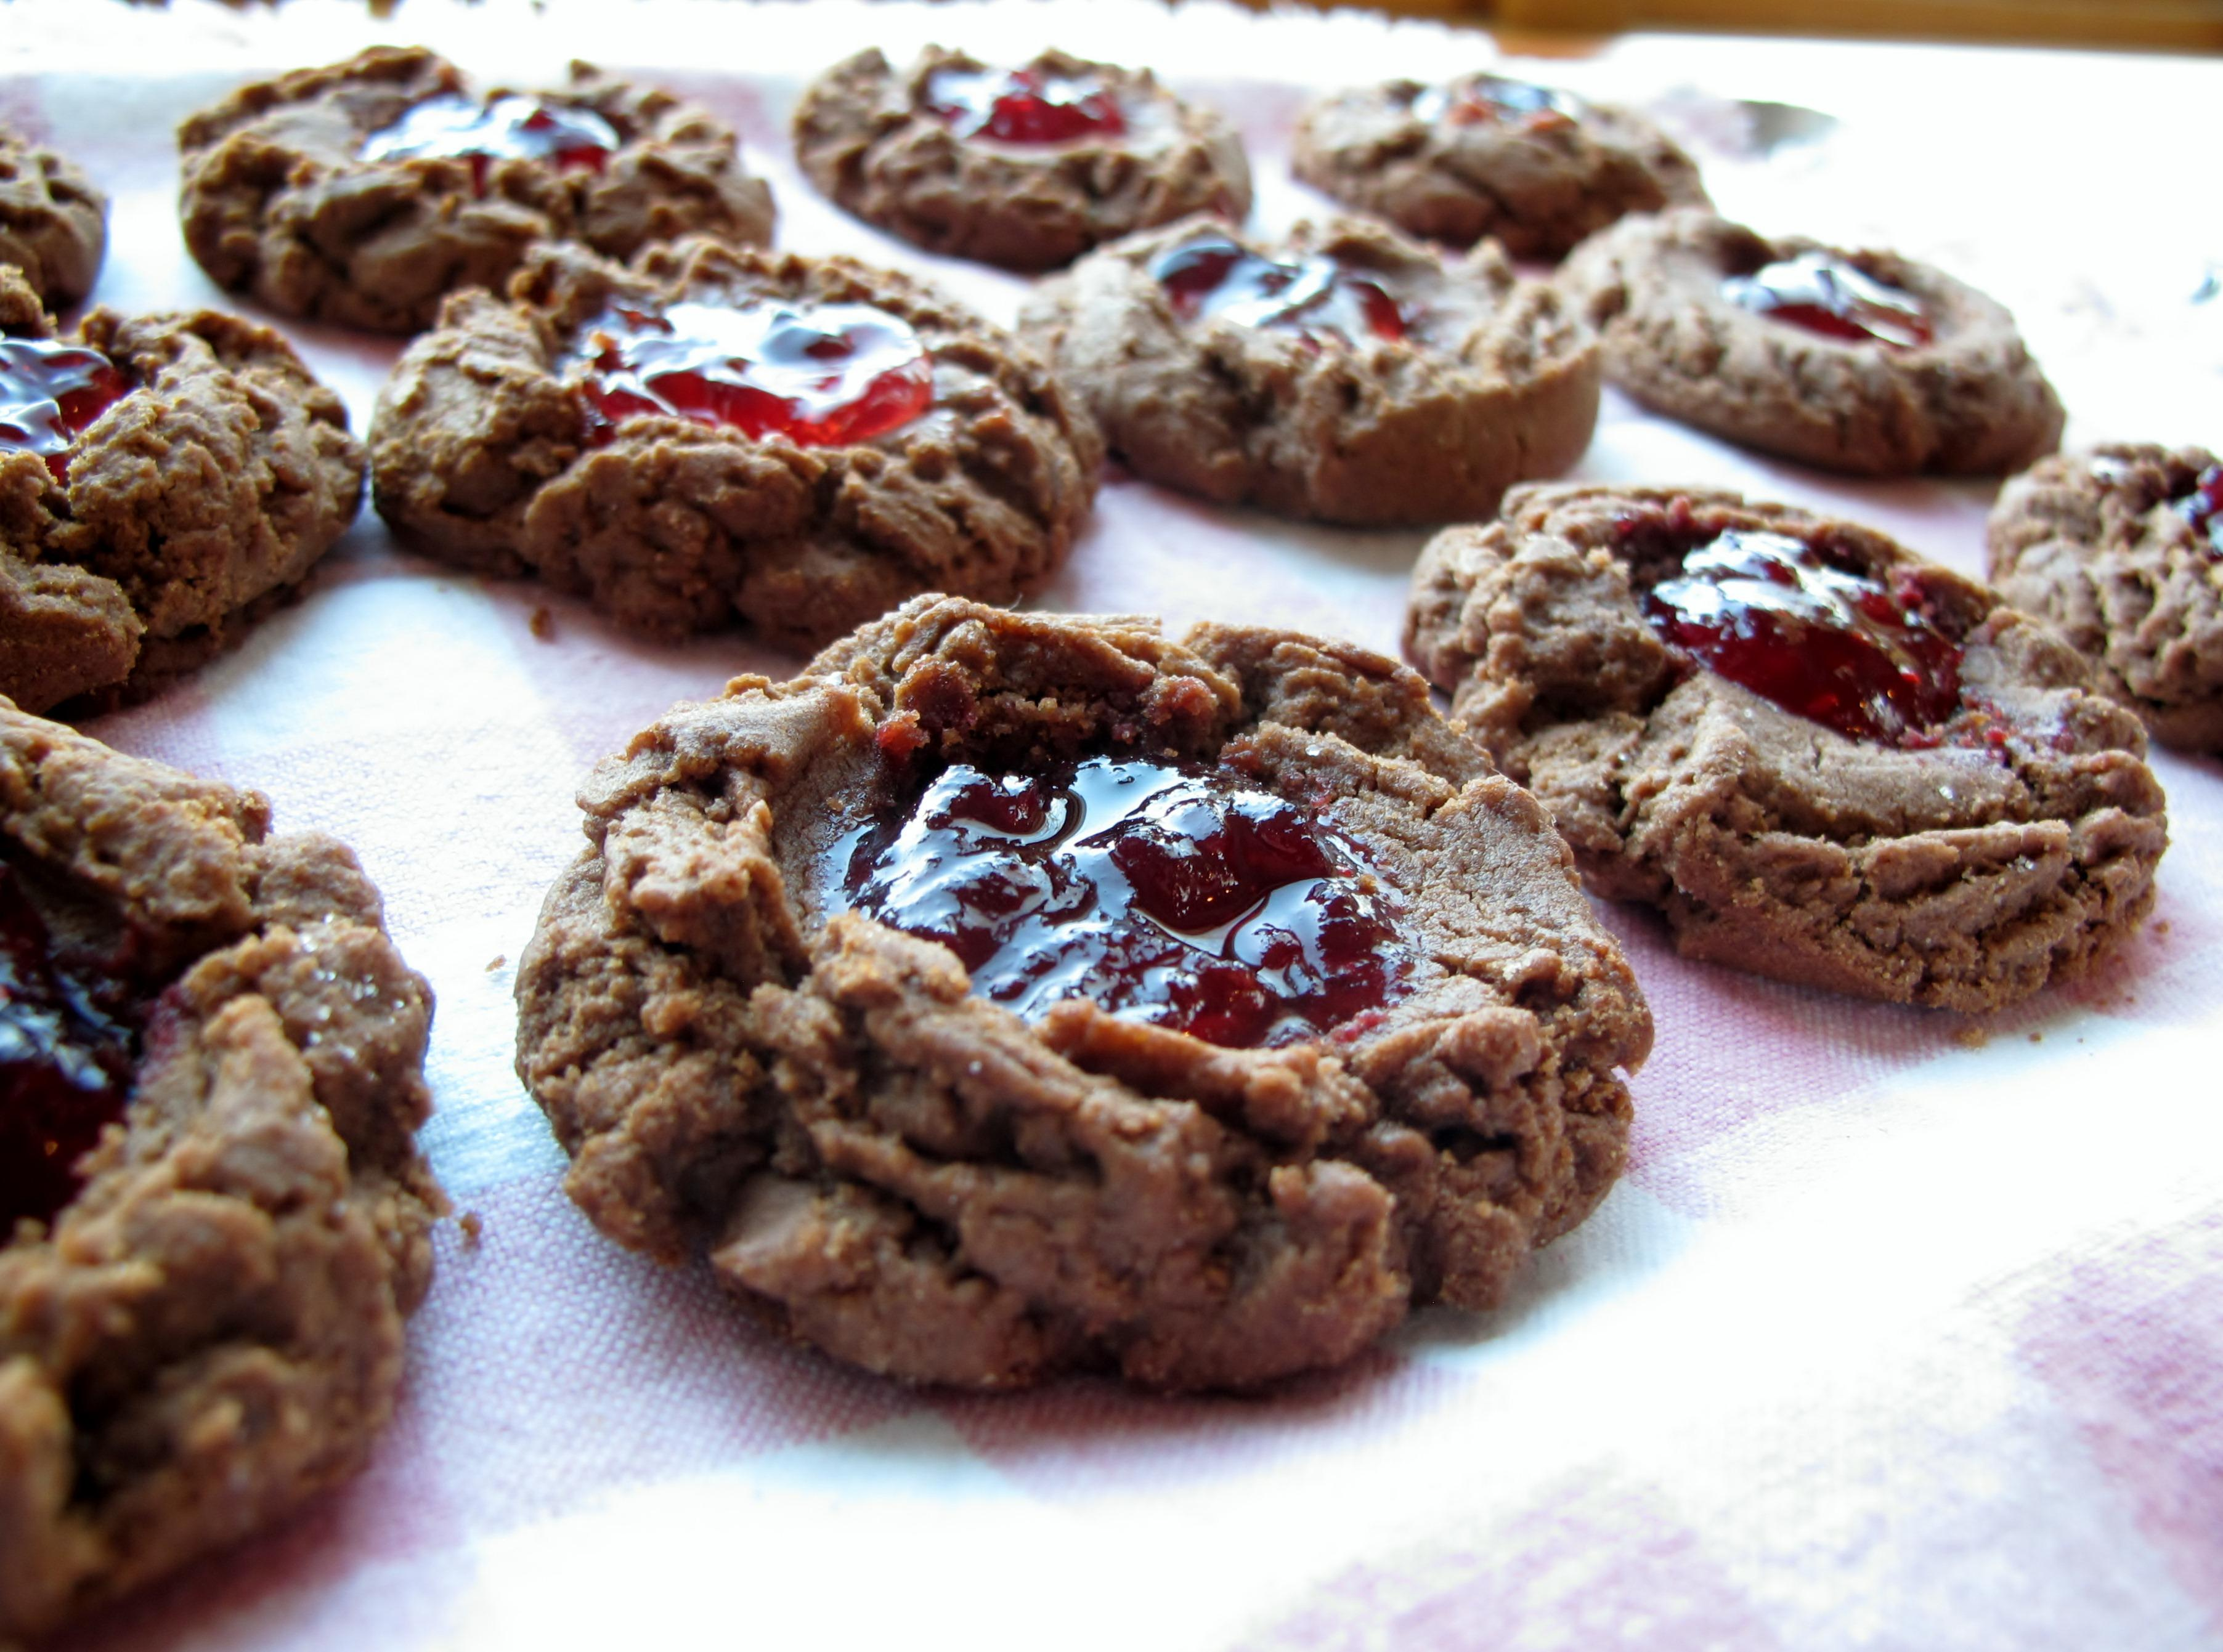 Peanut Butter & Chocolate Thumbprints with Raspberry Chambord Jam ...